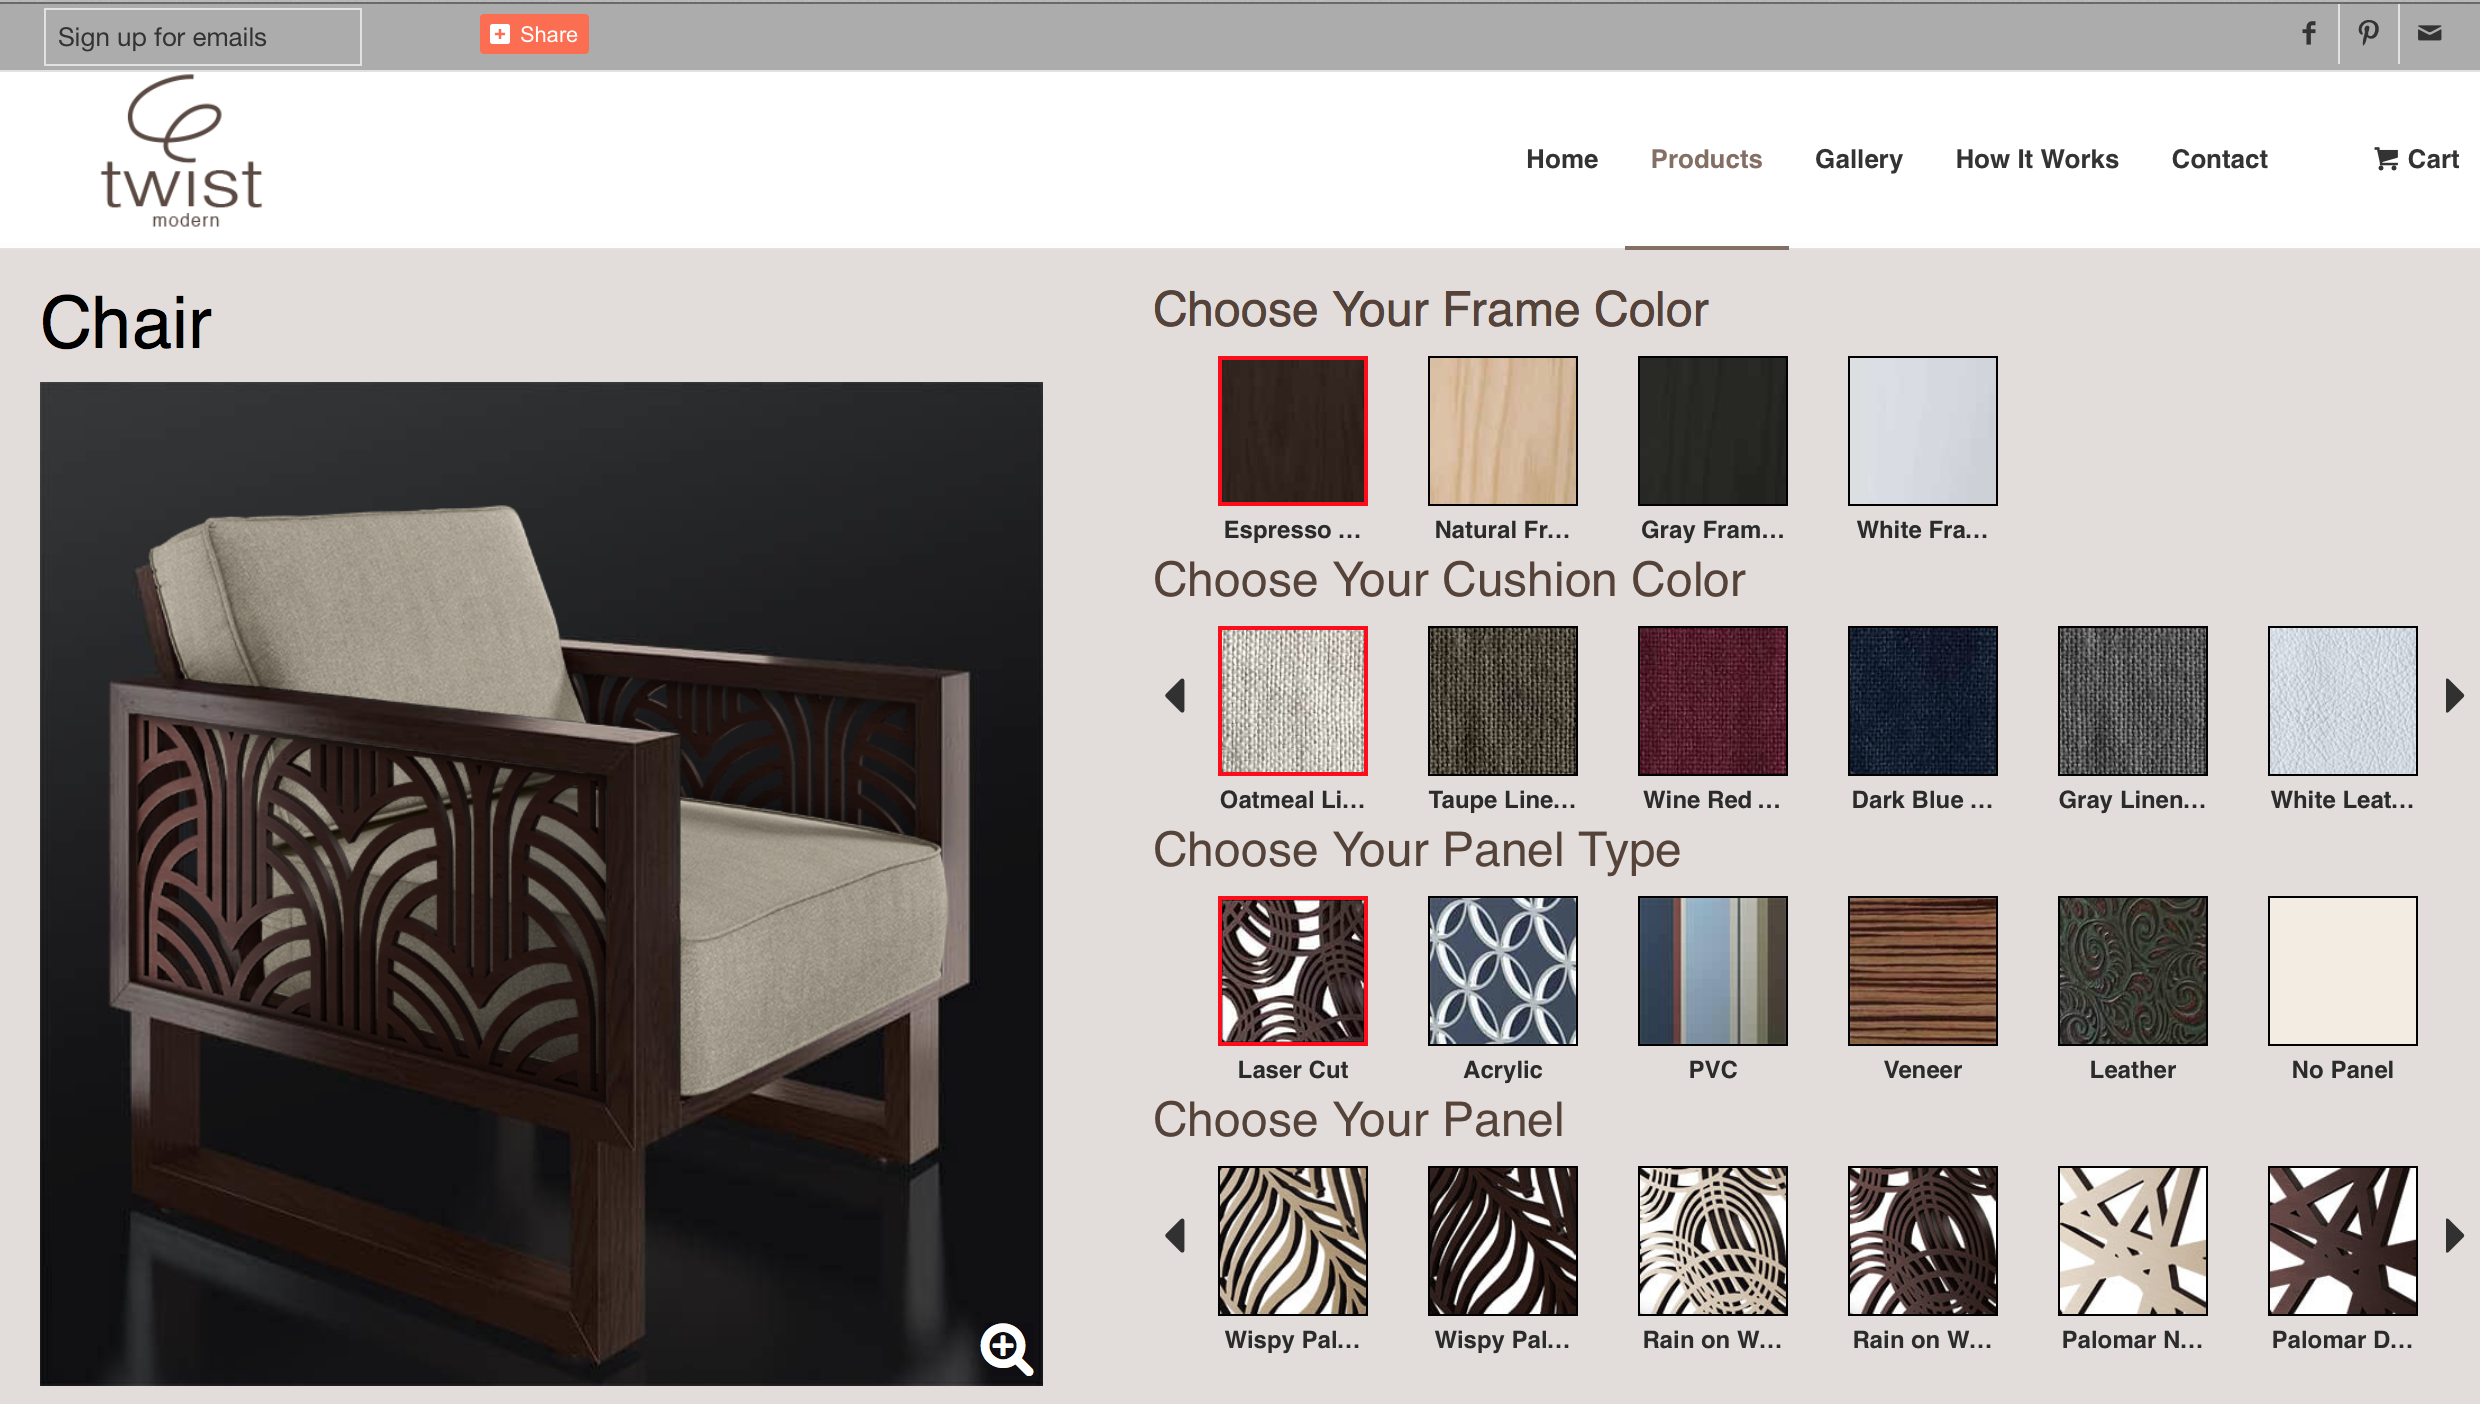 custom furniture. build your own design online from 100s of